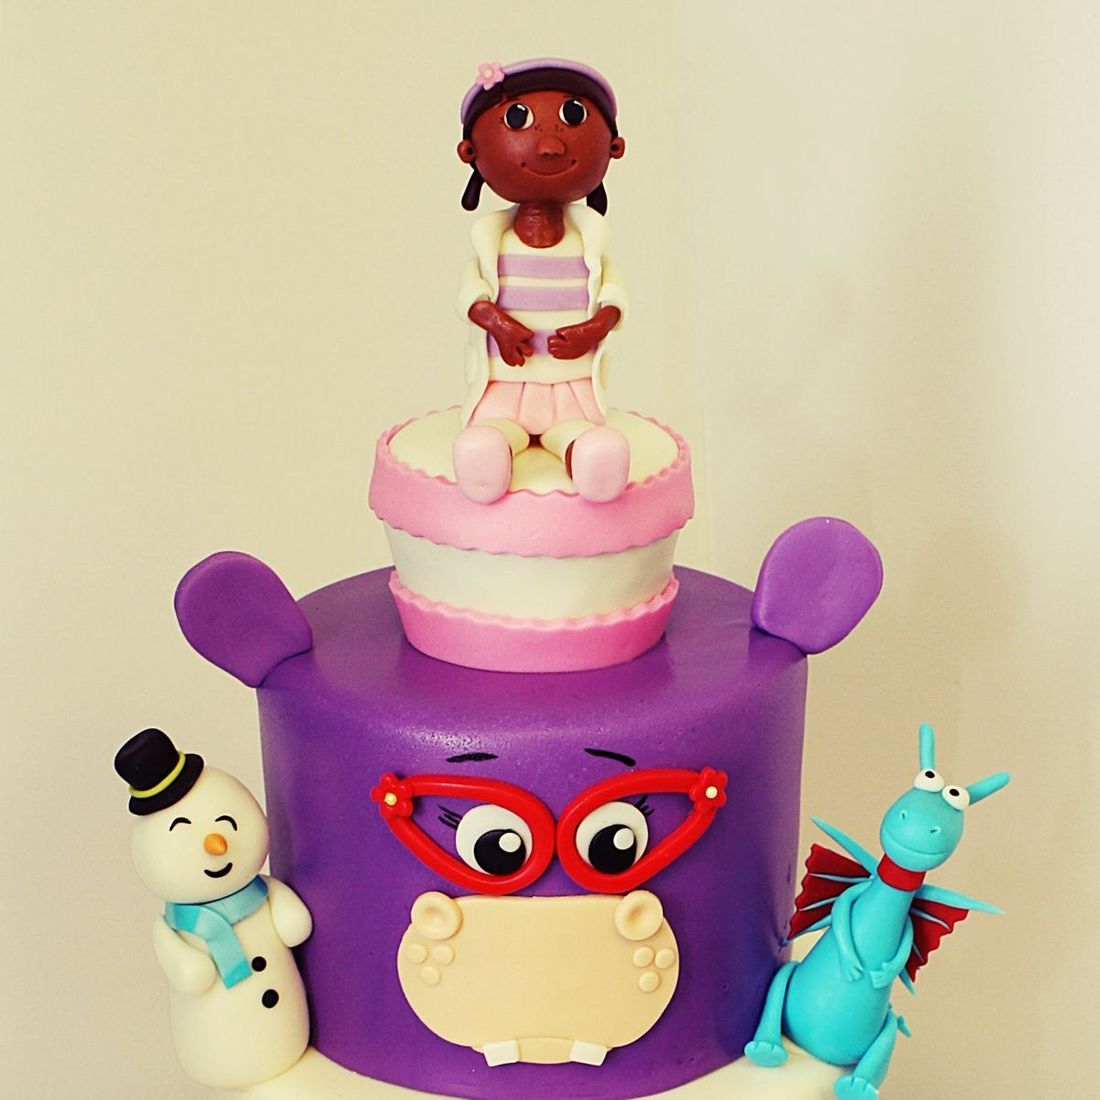 Doc McStuffins & Friends Cake Milwaukee